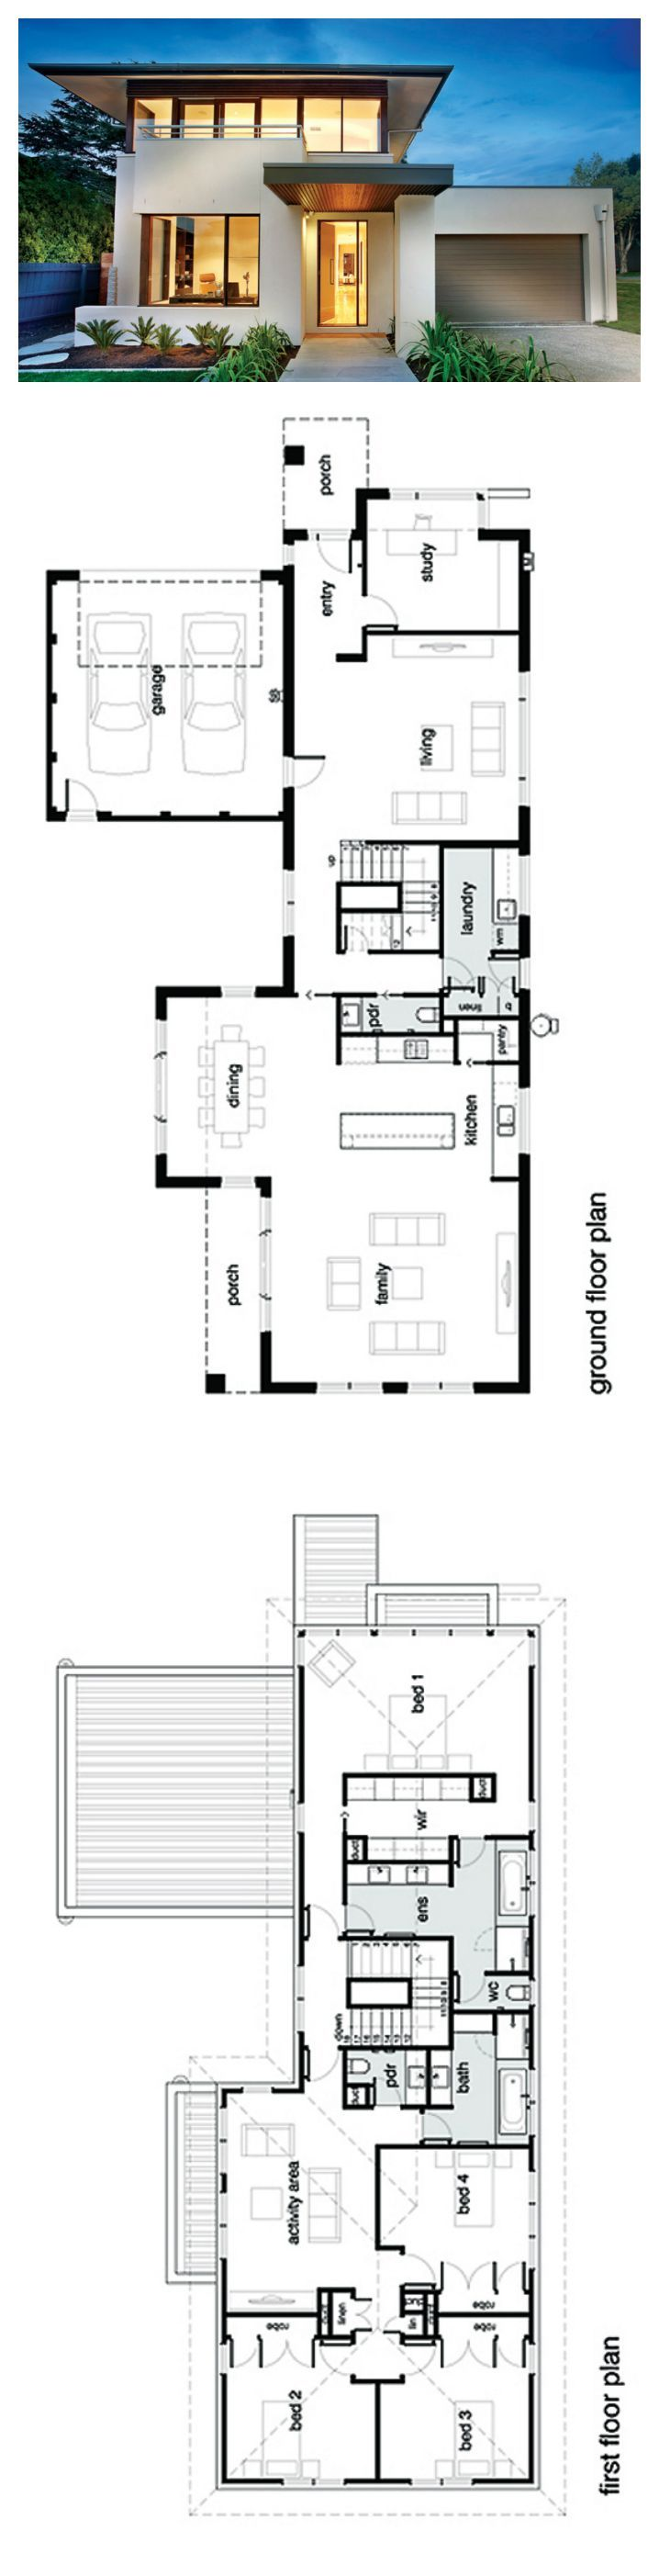 Best 25 modern house plans ideas on pinterest modern for Design small house plans